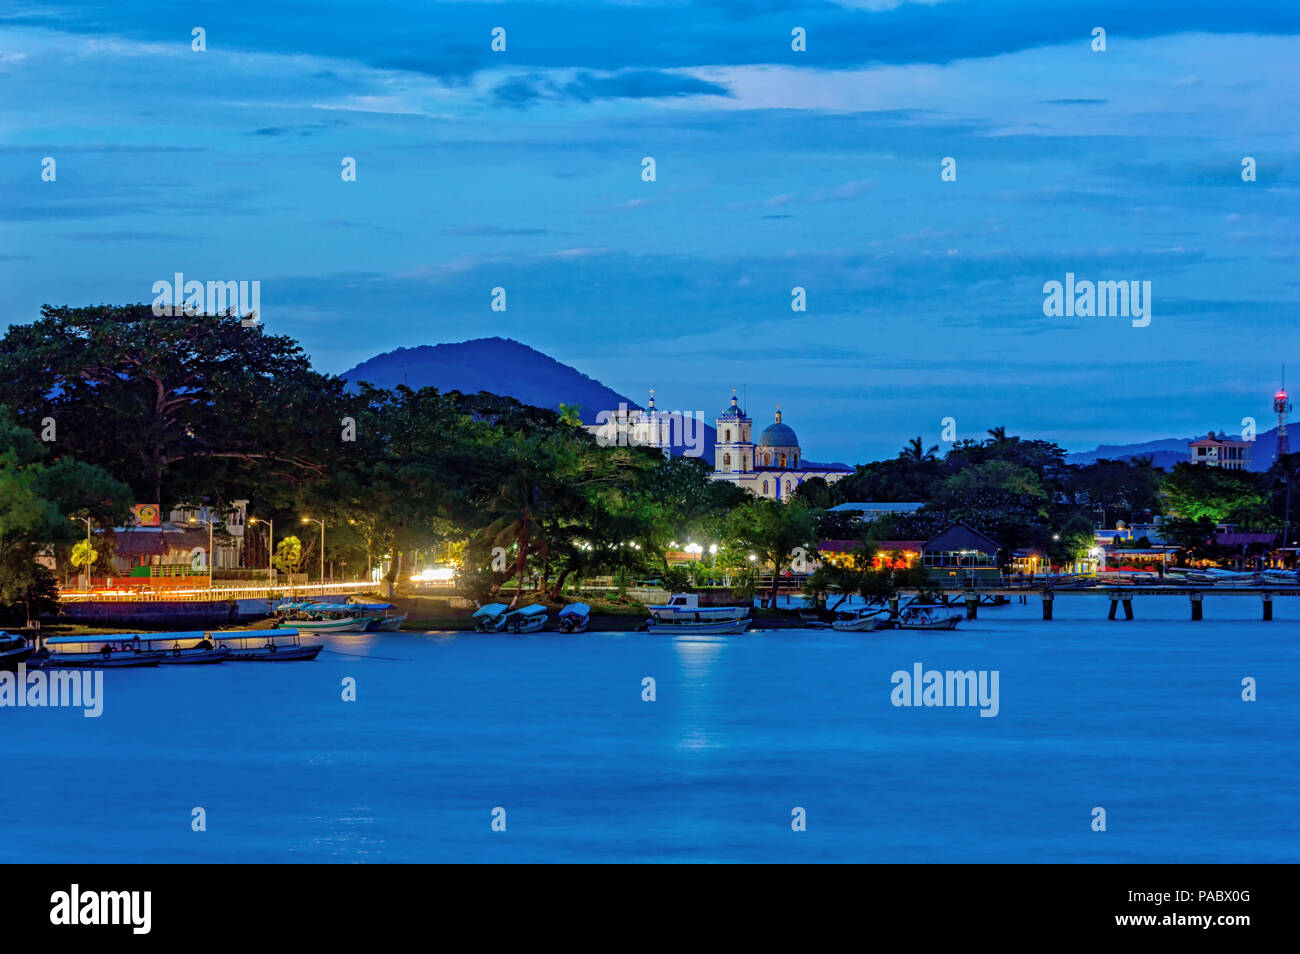 Catemaco in Veracruz, Mexico during the blue hour. - Stock Image